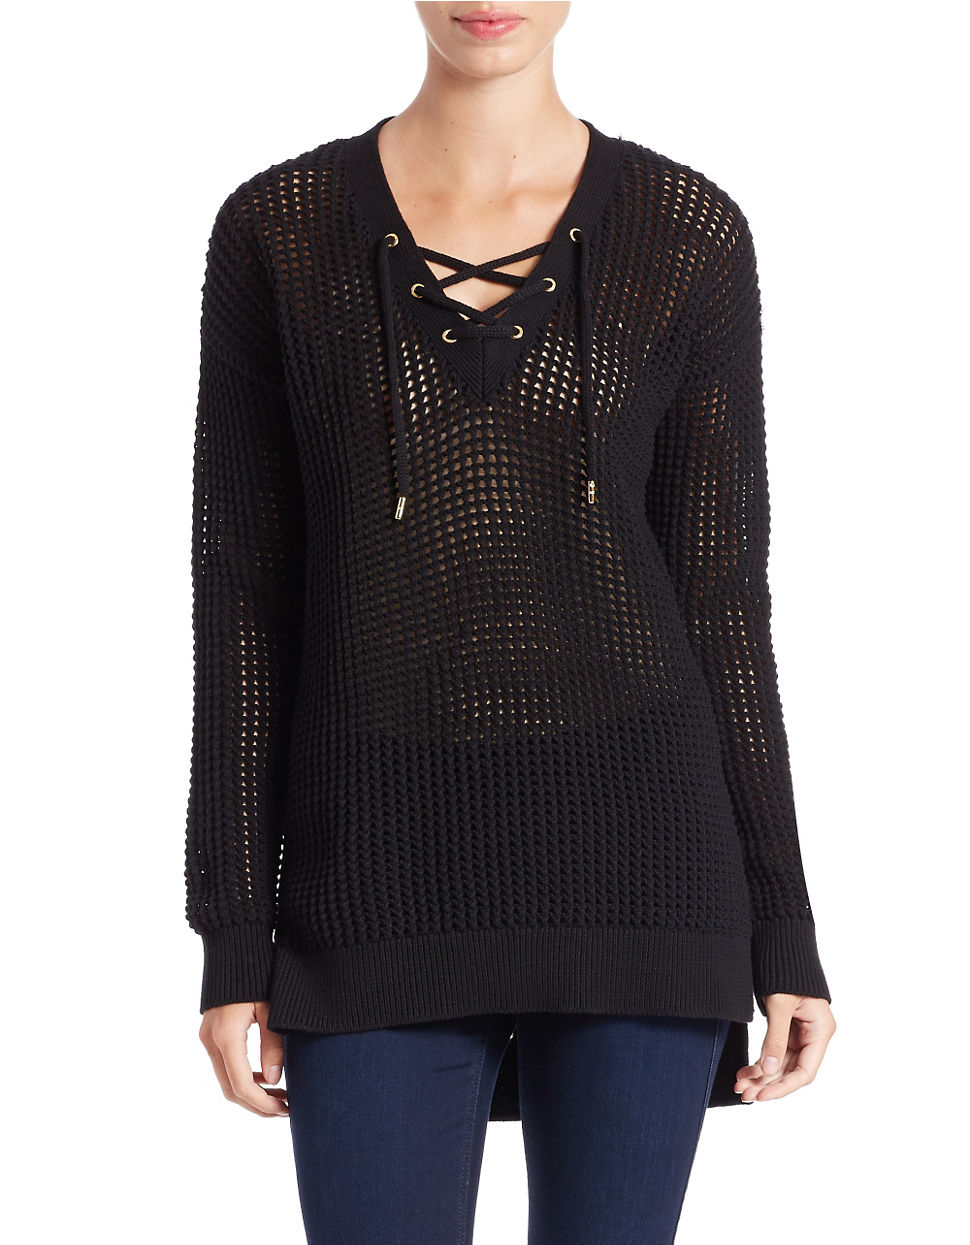 michael michael kors open knit lace up pullover in black lyst. Black Bedroom Furniture Sets. Home Design Ideas